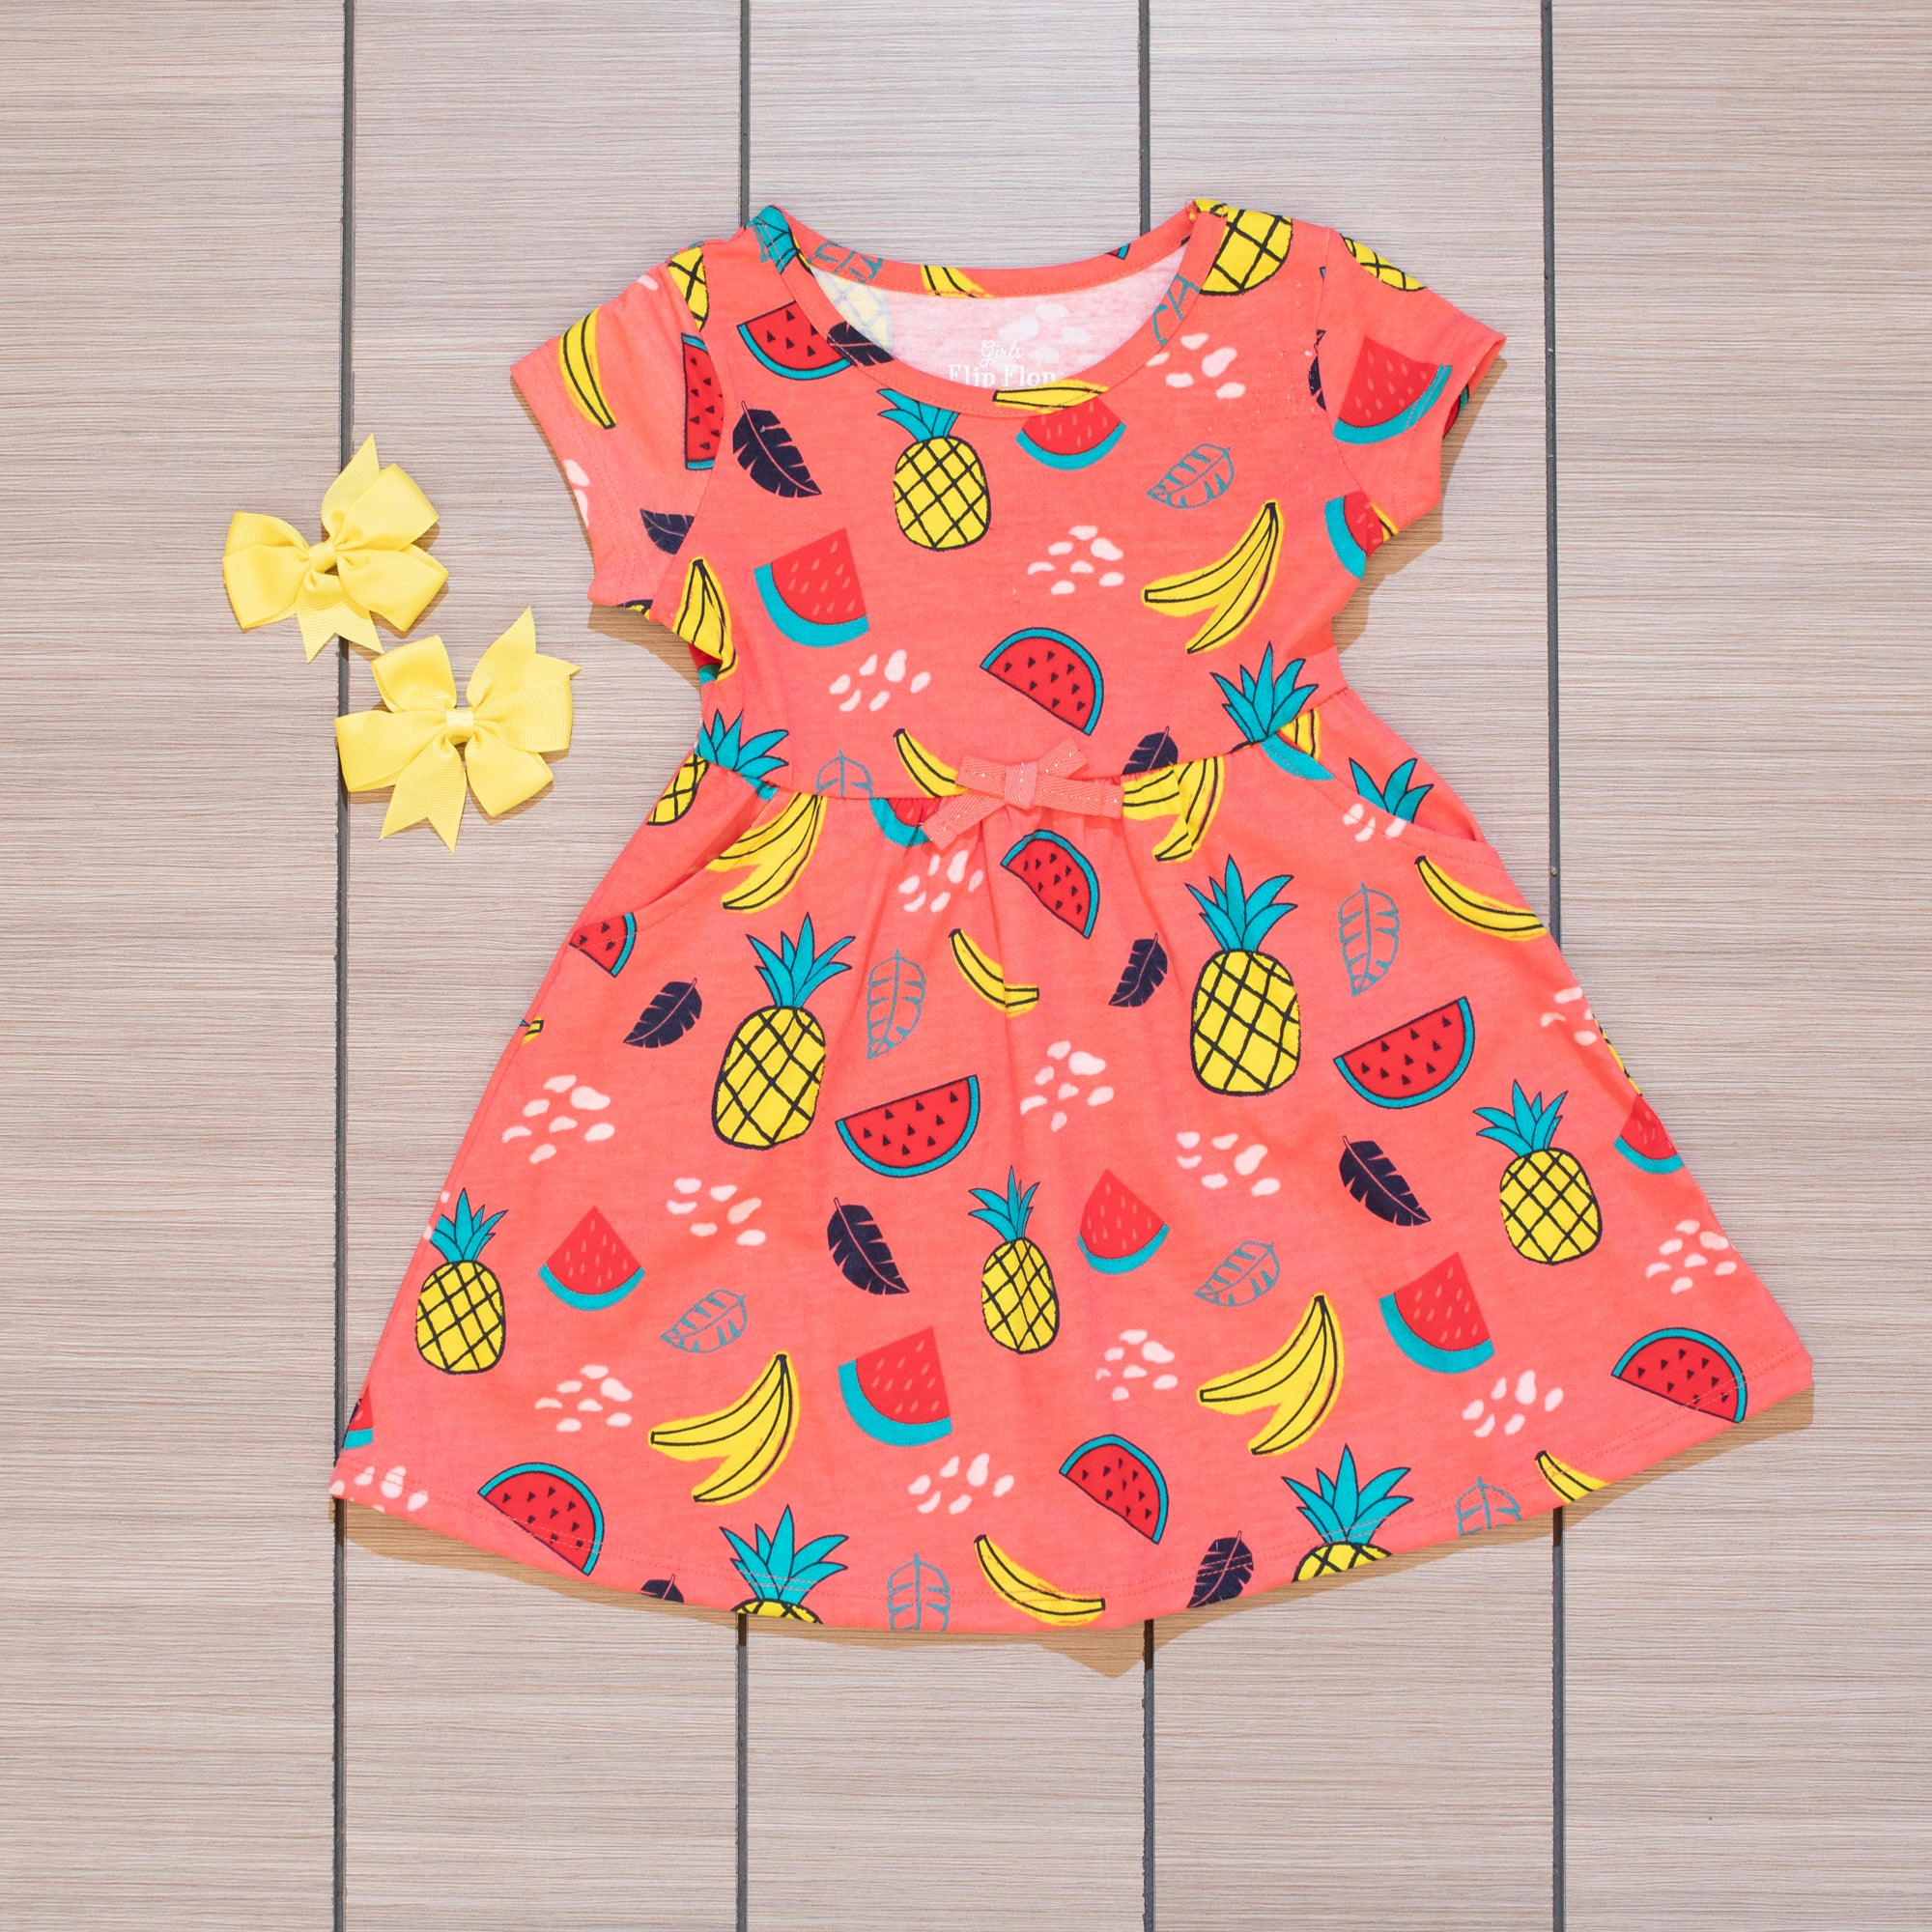 Watermelon Summer Toddler Dress